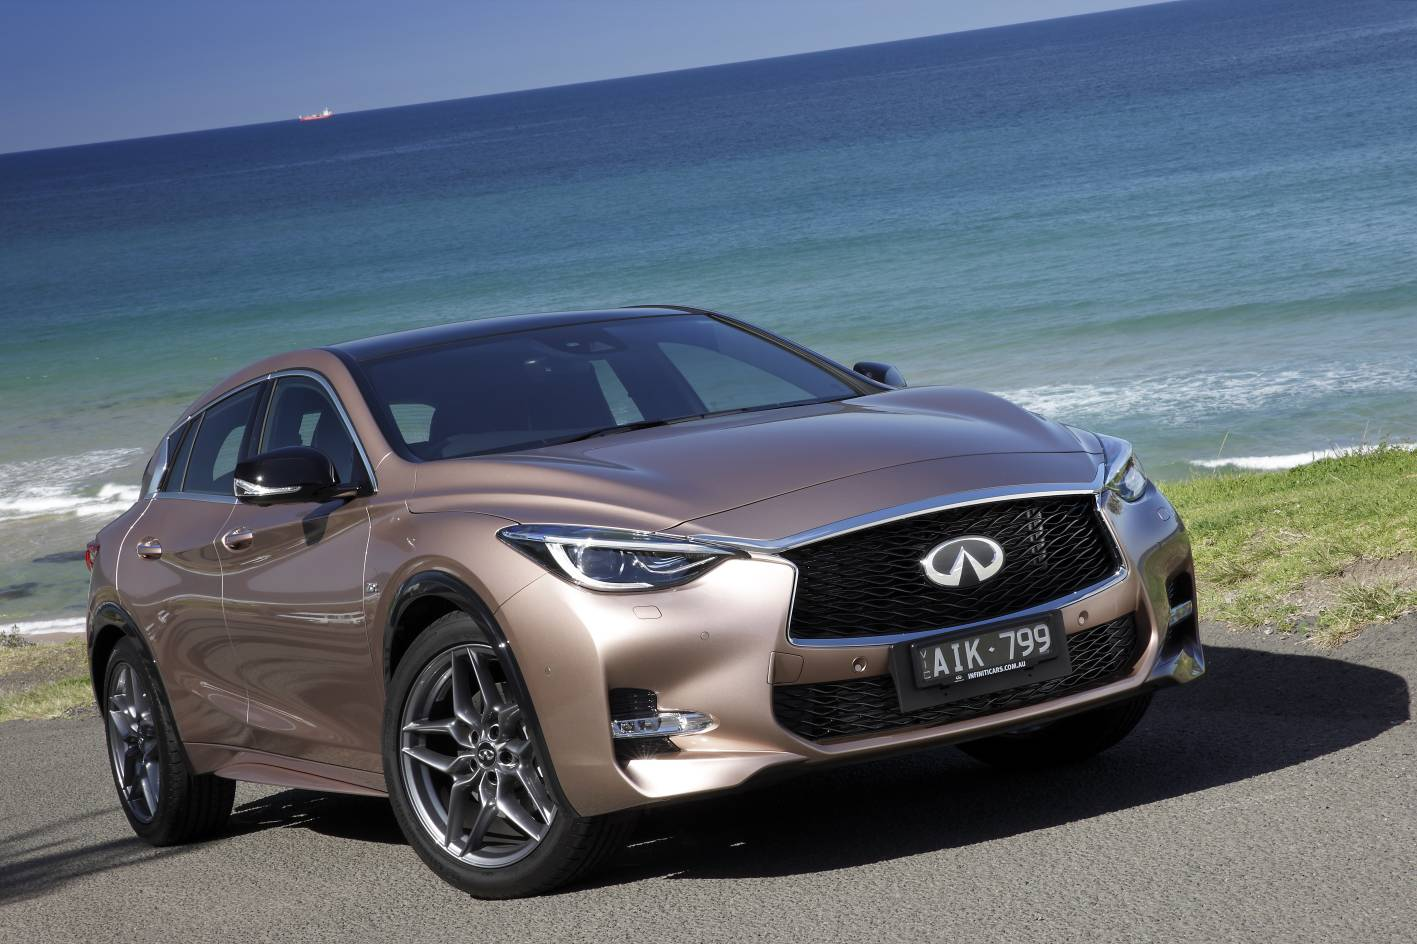 2017 infiniti q30 lands in australia from 38 900. Black Bedroom Furniture Sets. Home Design Ideas